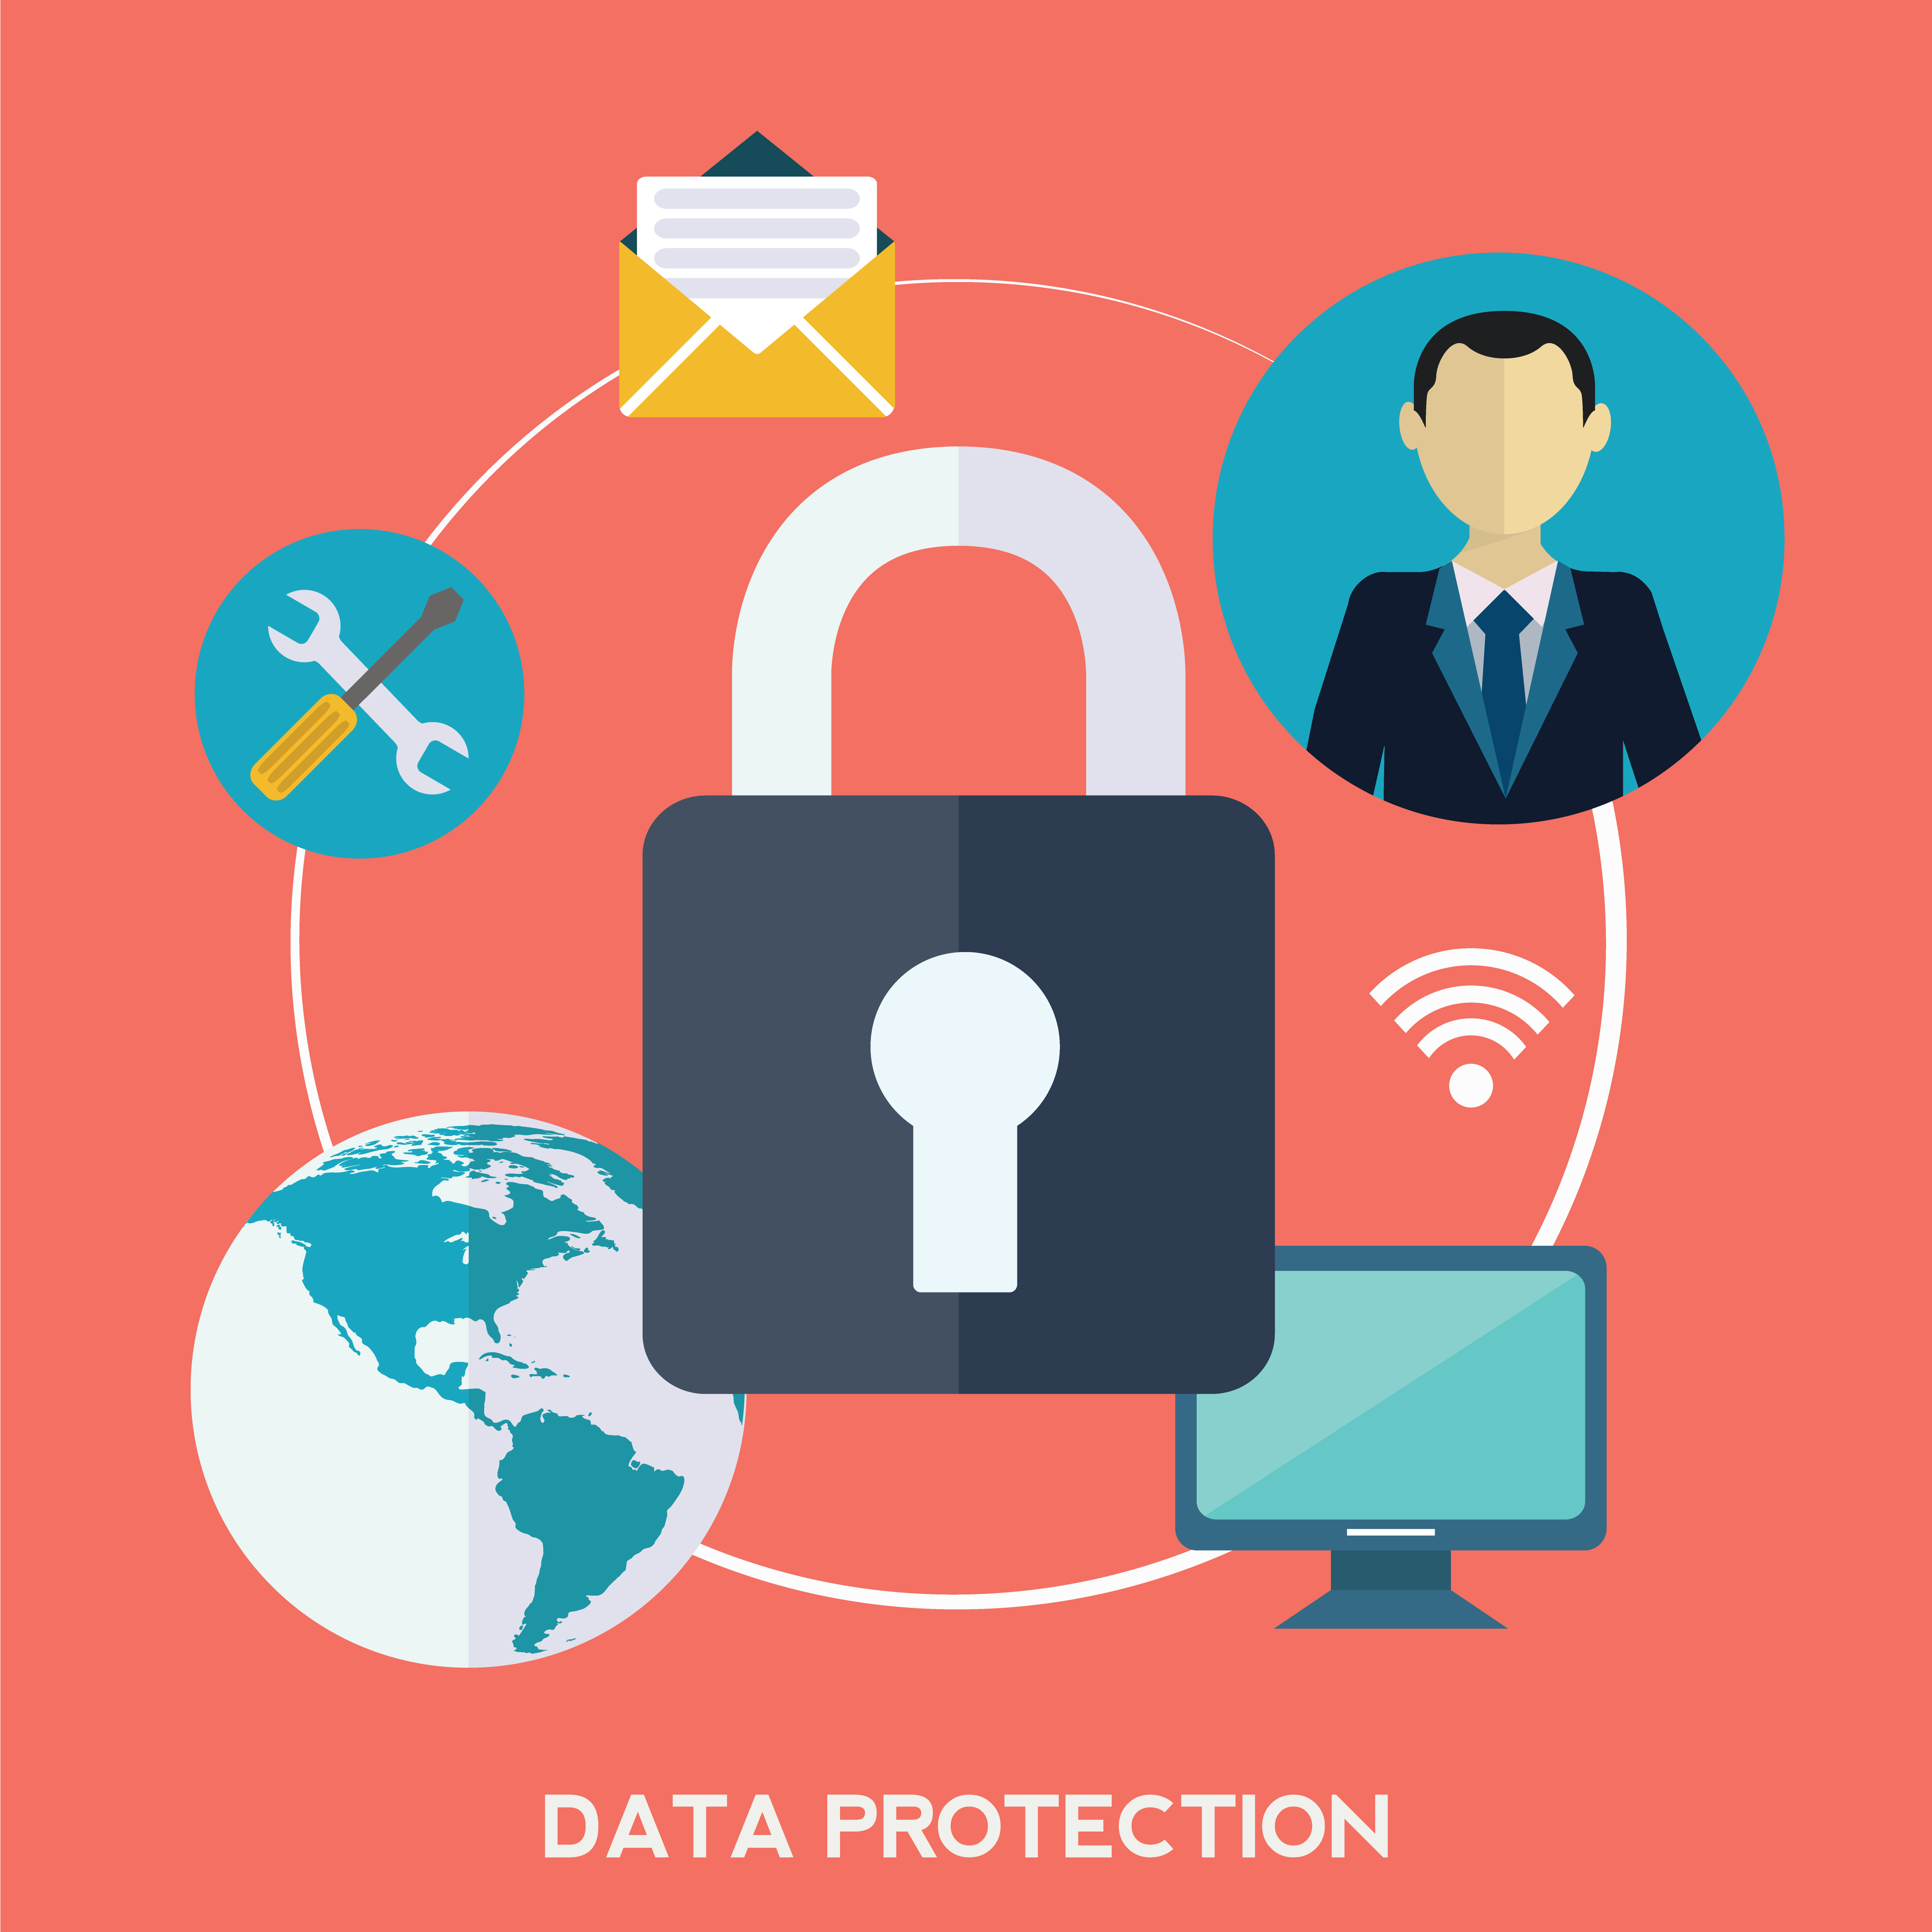 A new data protection and privacy regime